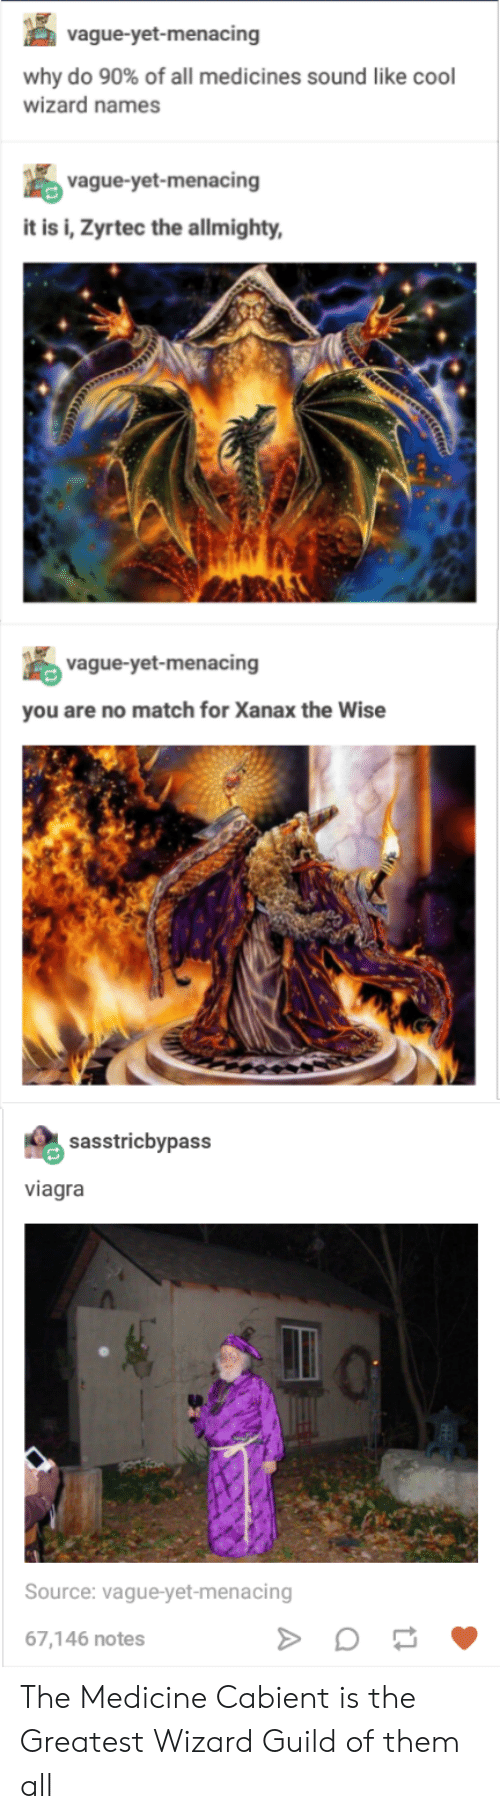 guild: vague-yet-menacing  why do 90% of all medicines sound like cool  wizard names  vague-yet-menacing  it is i, Zyrtec the allmighty,  vague-yet-menacing  you are no match for Xanax the Wise  sasstricbypass  viagra  Source: vague-yet-menacing  67,146 notes The Medicine Cabient is the Greatest Wizard Guild of them all